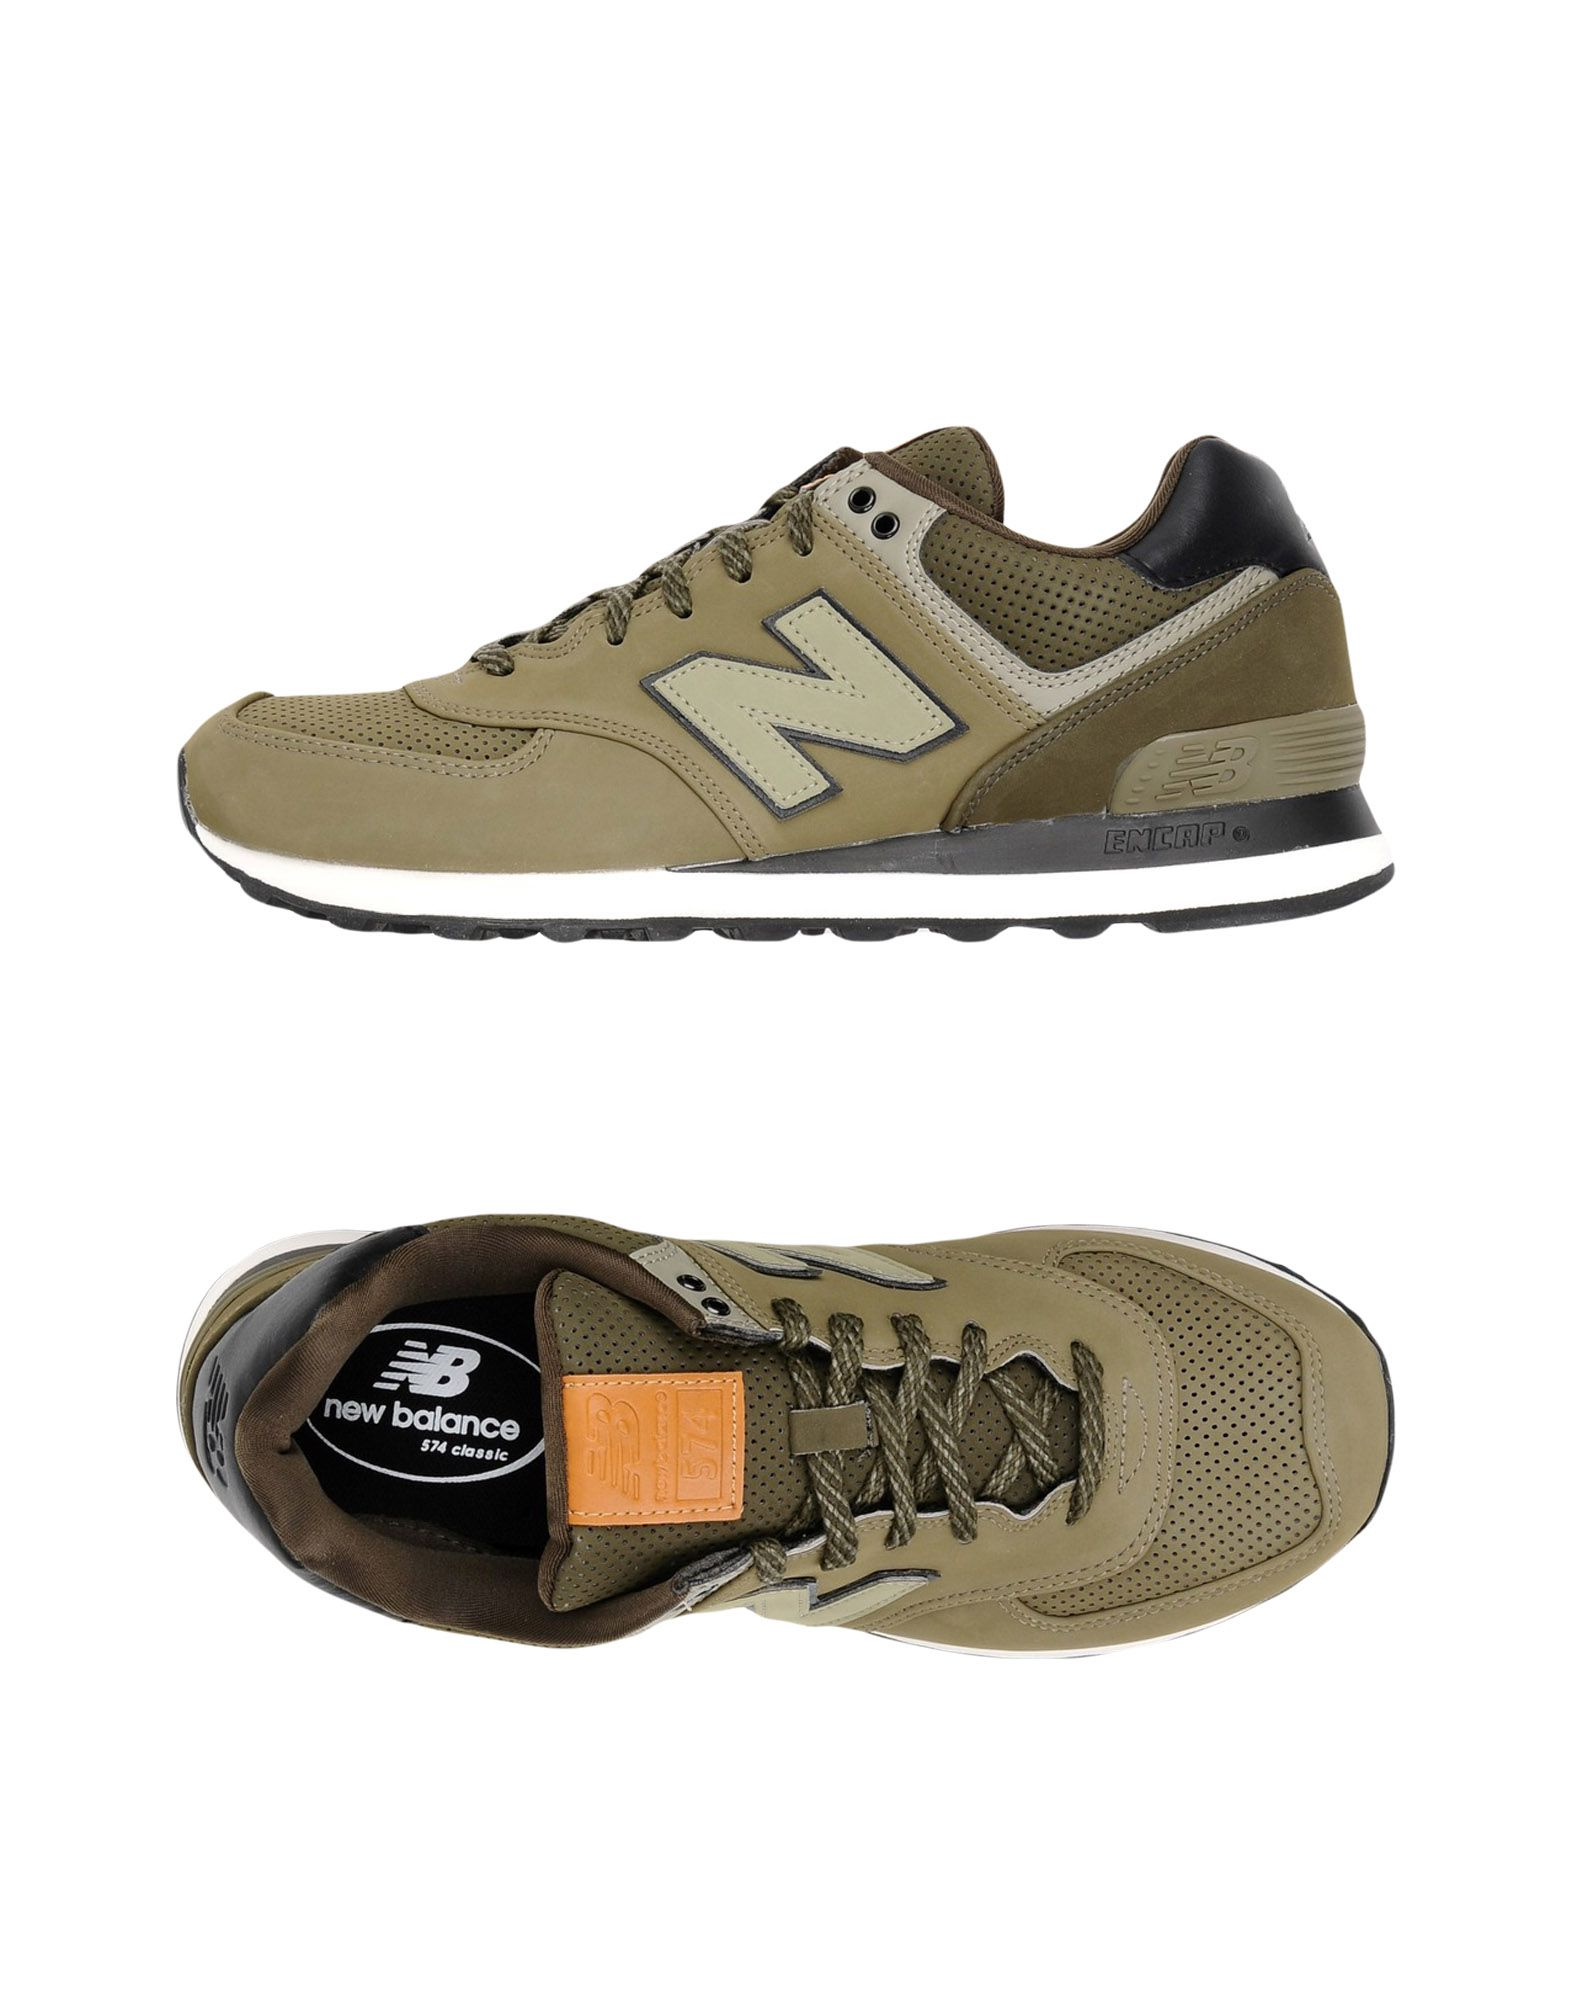 Sneakers New Balance 574 Winter Nubuck - Homme - Sneakers New Balance sur